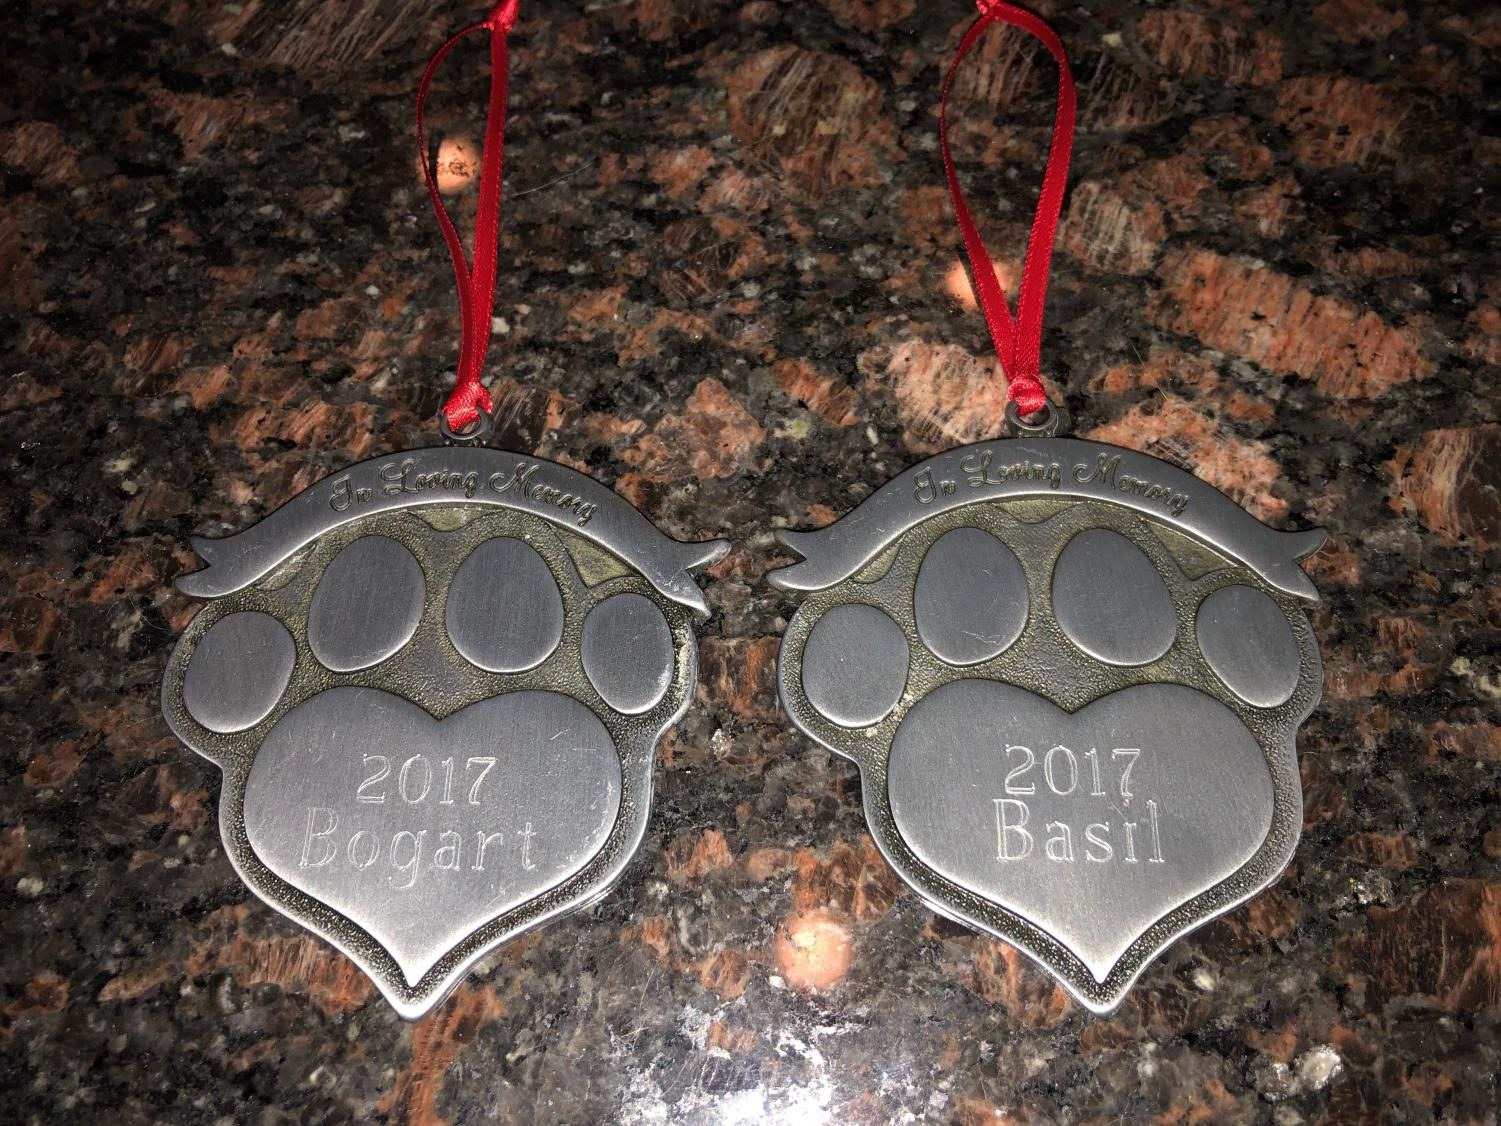 The Stewart family ornaments honoring their dogs.